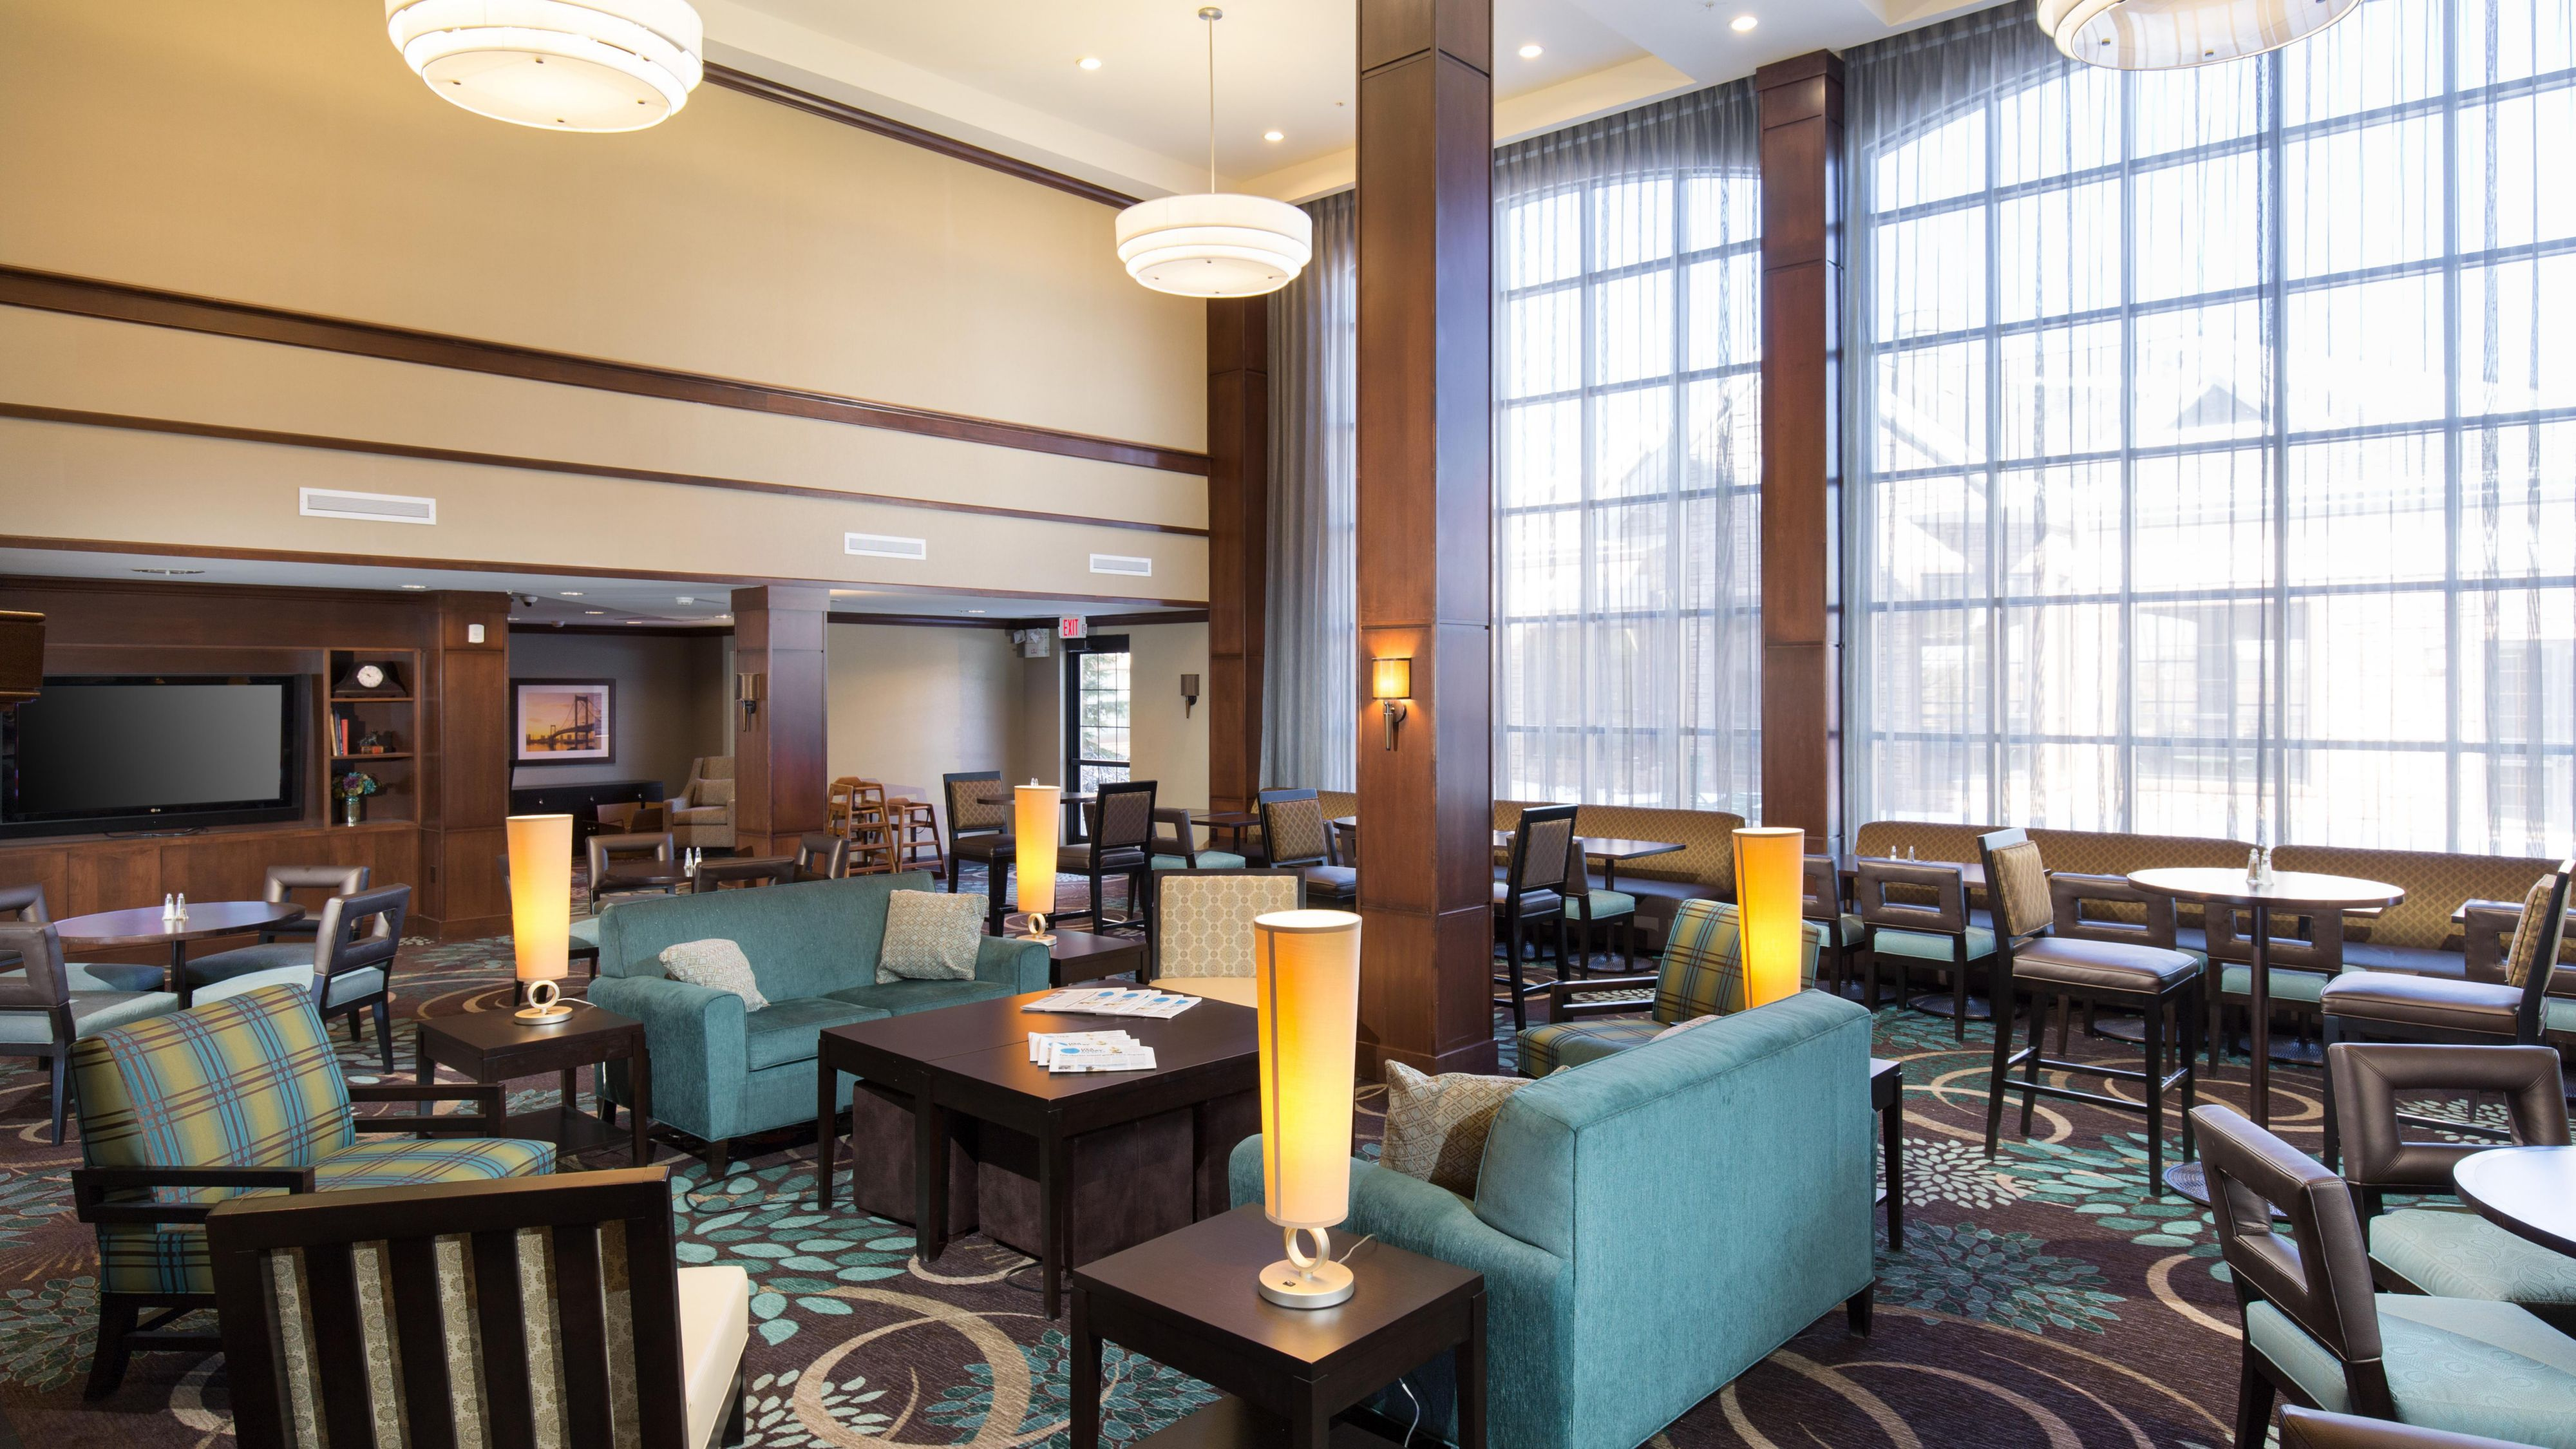 Comment Faire Pour Ouvrir Un Bowling hotels in maumee, ohio near university of toledo